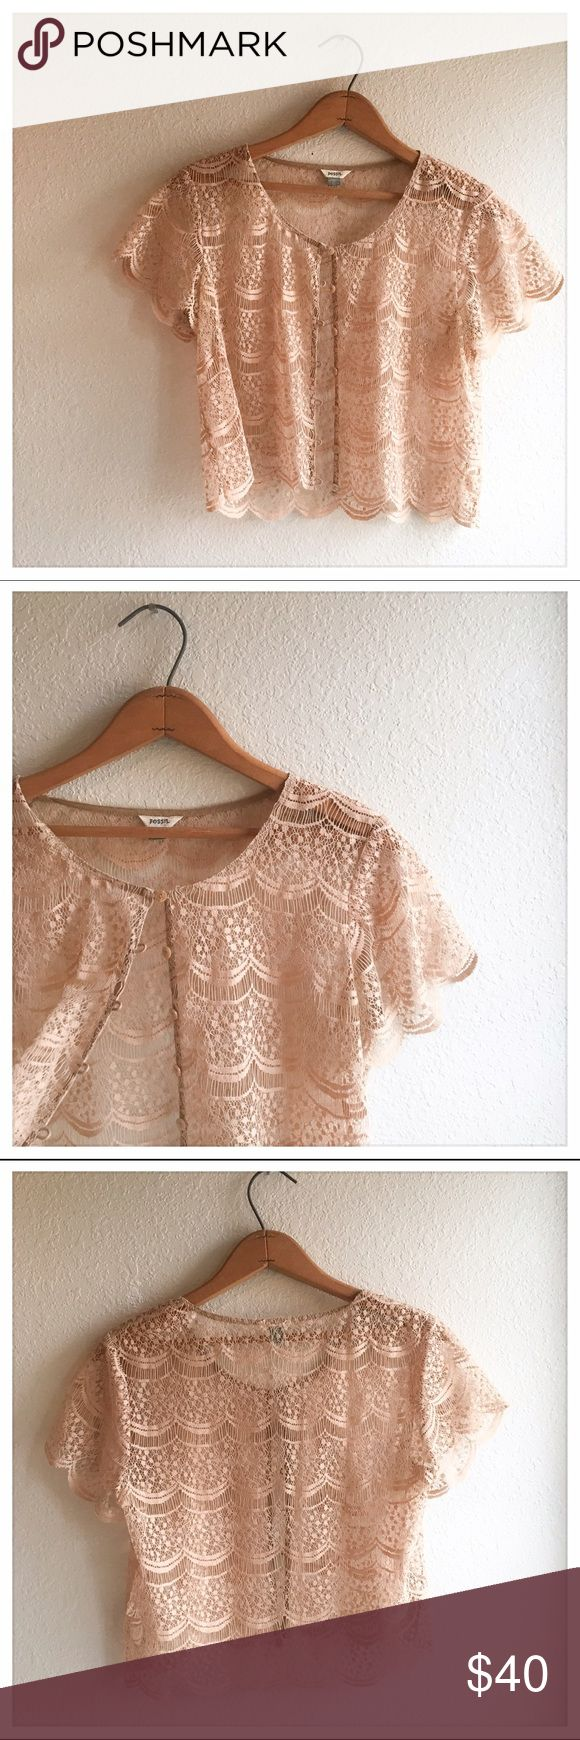 FOSSIL lace top Fossil lace button up top. Such a light feminine top! Perfect to put on over an elegant dress or over a top. Fossil Other